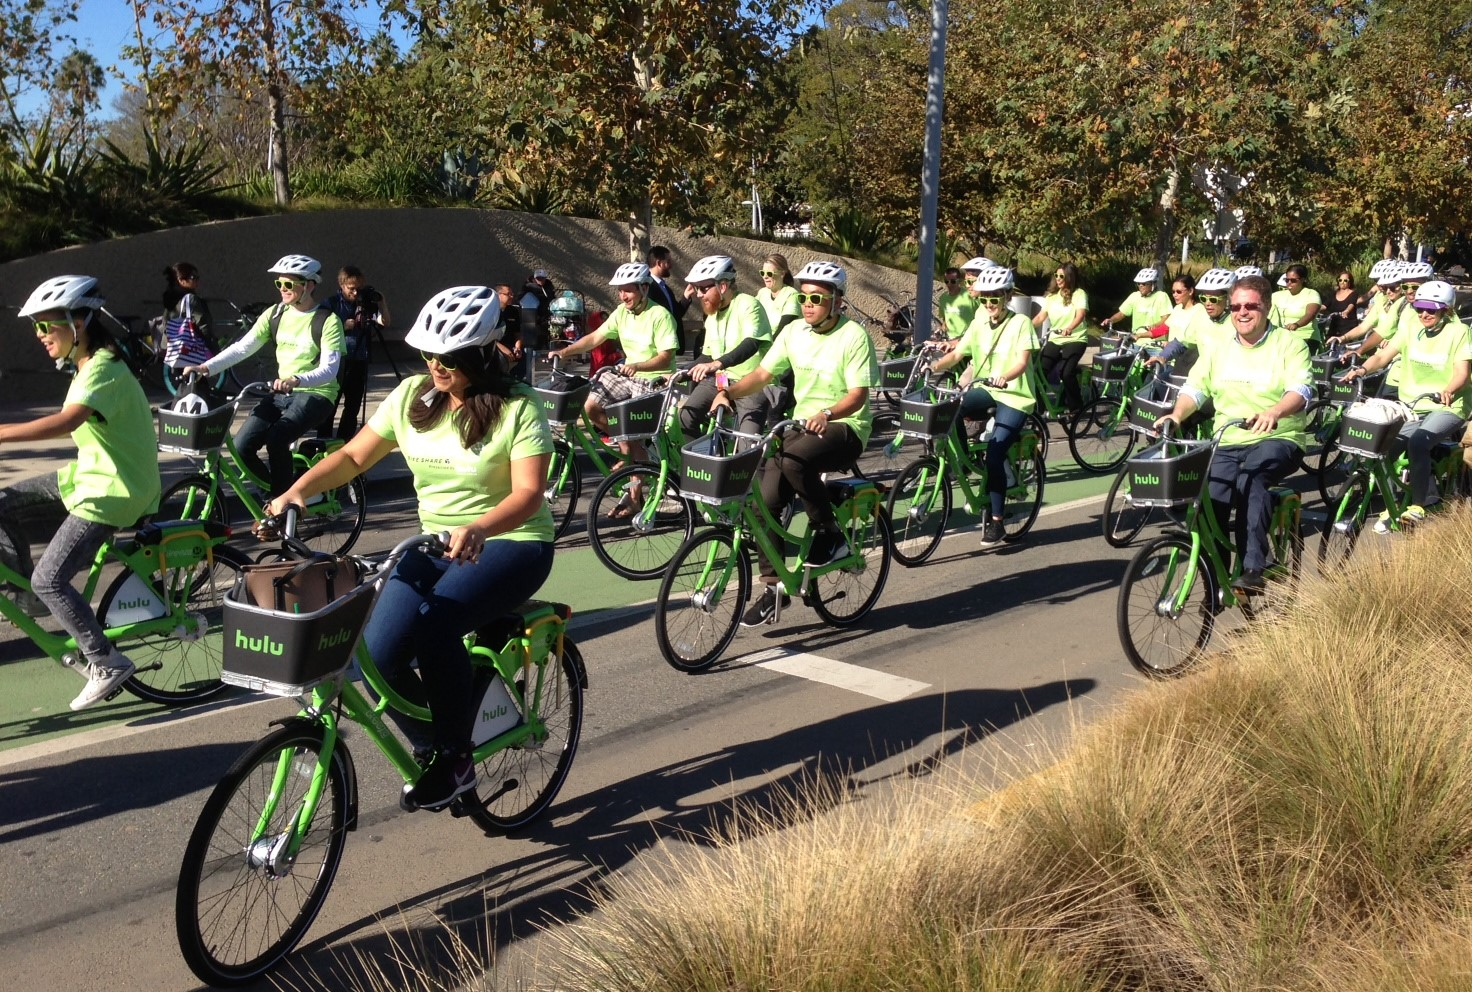 hulu corporate office share. L.A. And Santa Monica Finalize Terms For Venice Bike-Share Stations Hulu Corporate Office Share C